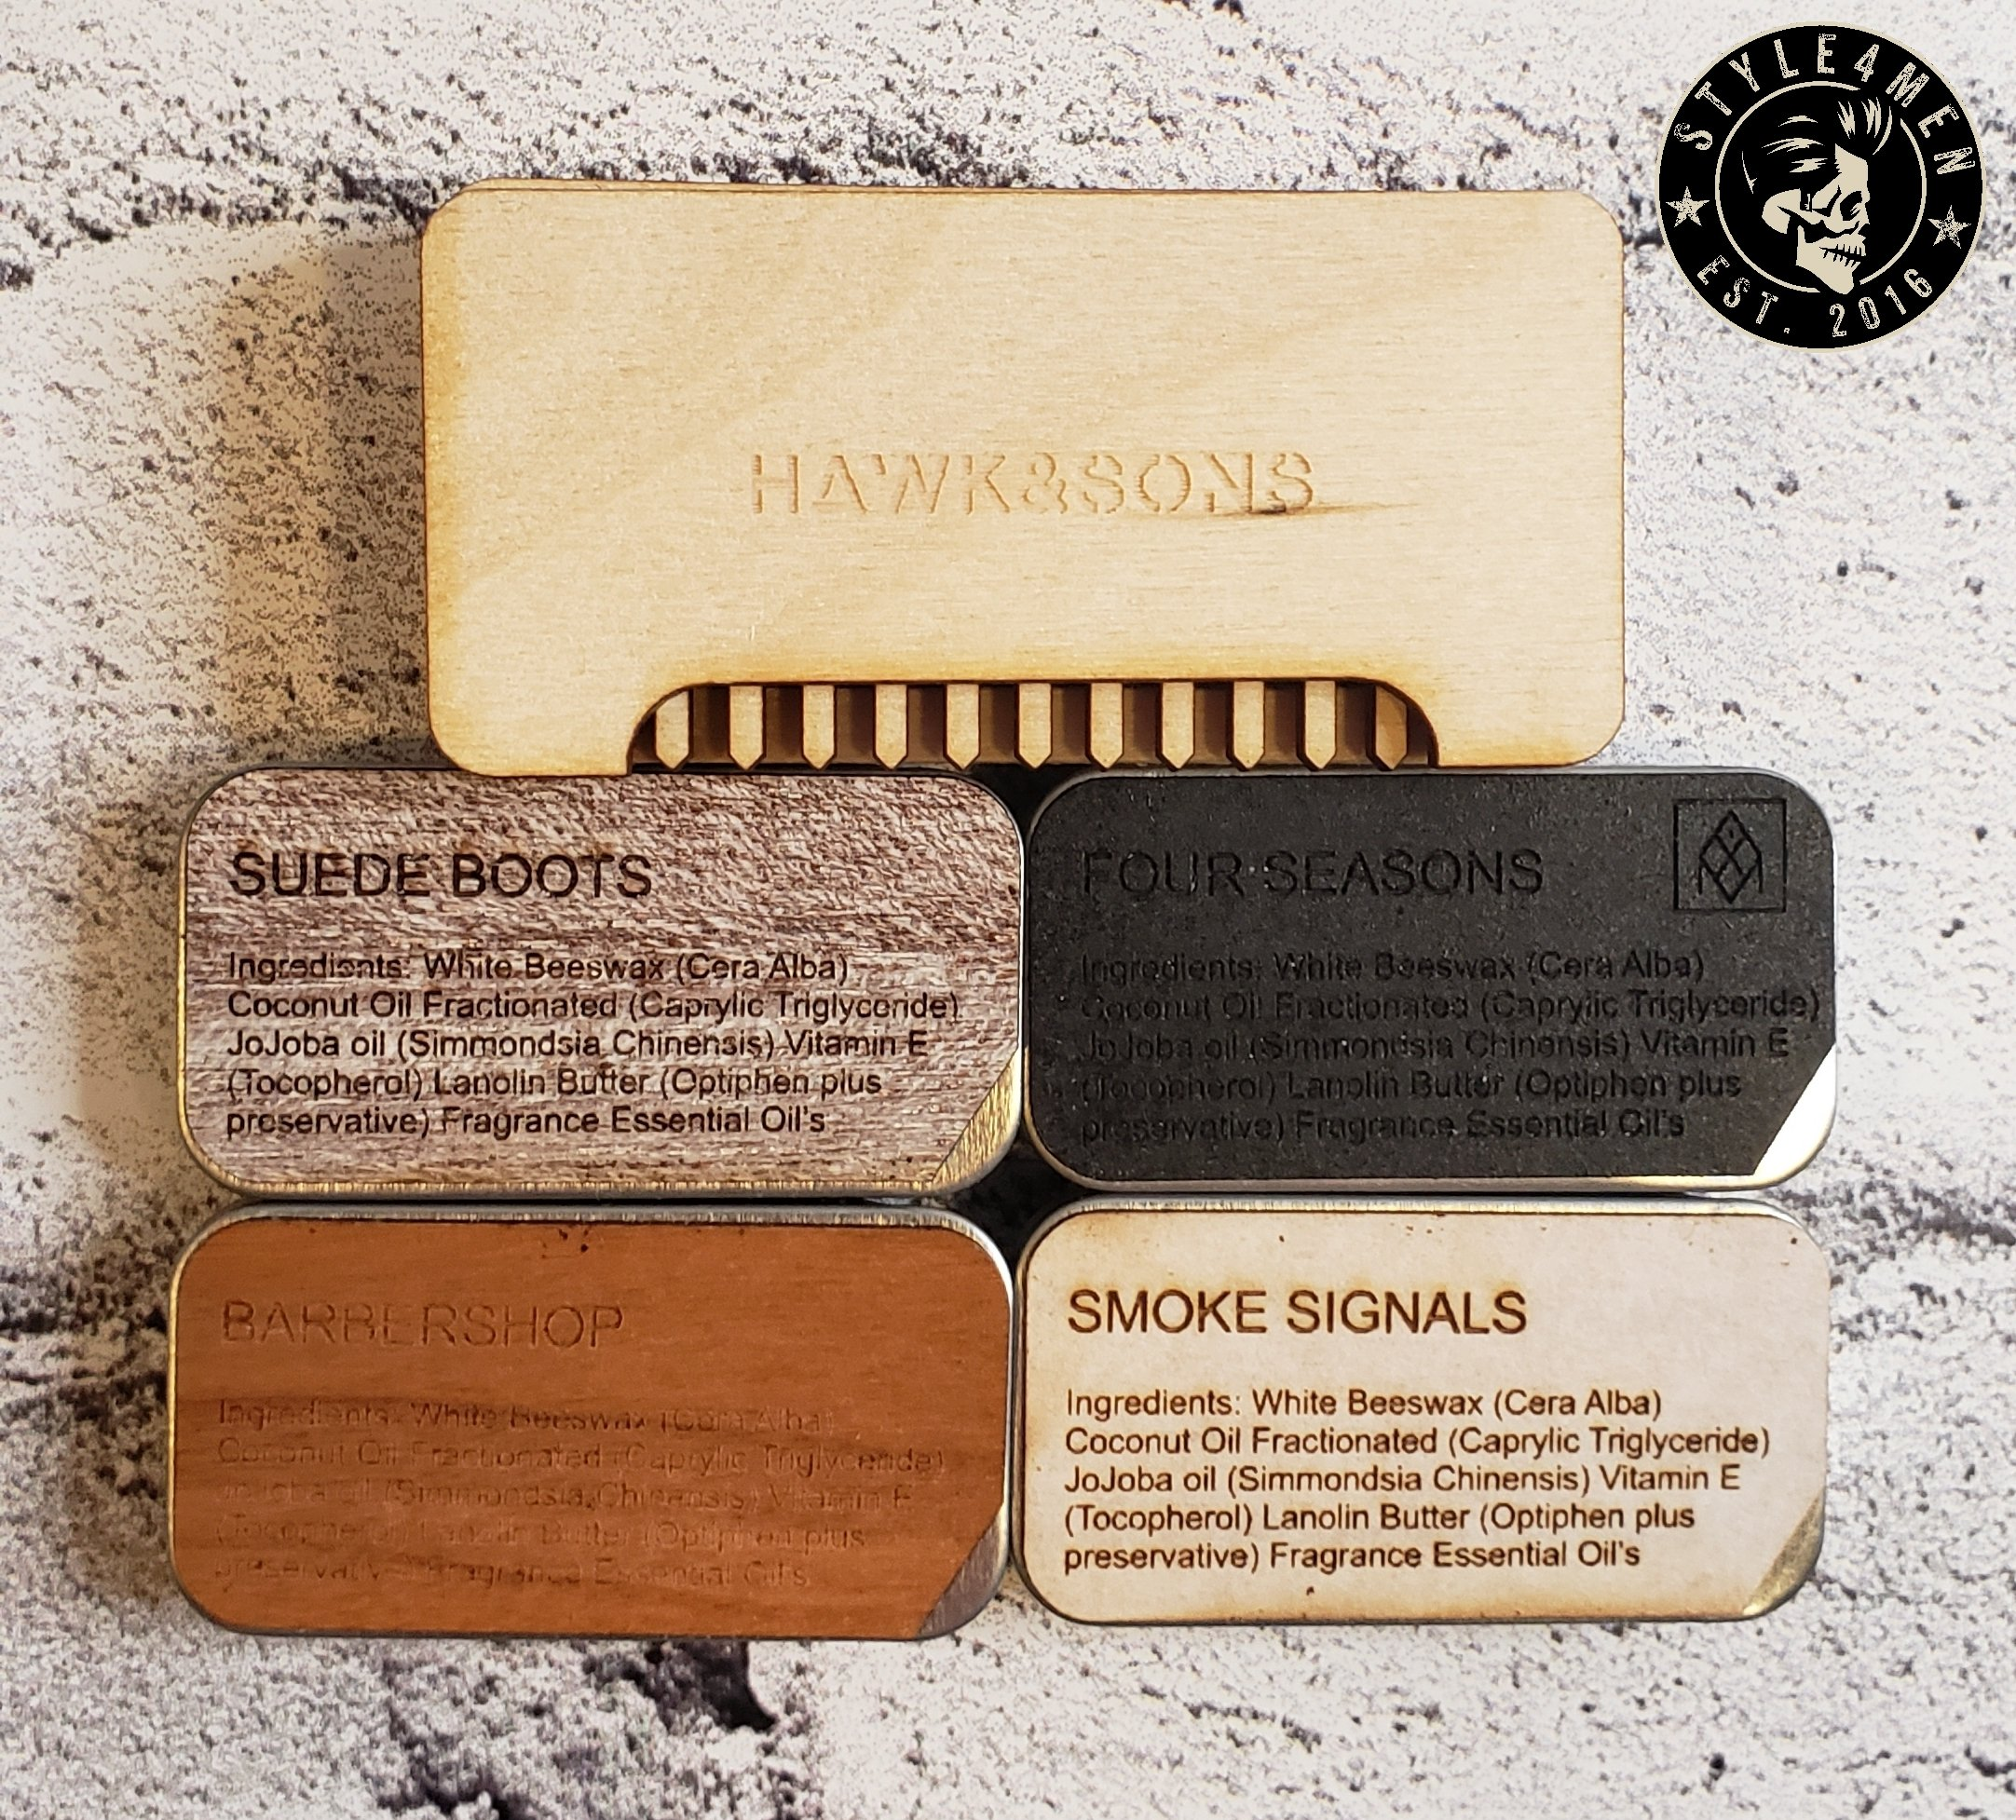 Hawk & Sons solid cologne range